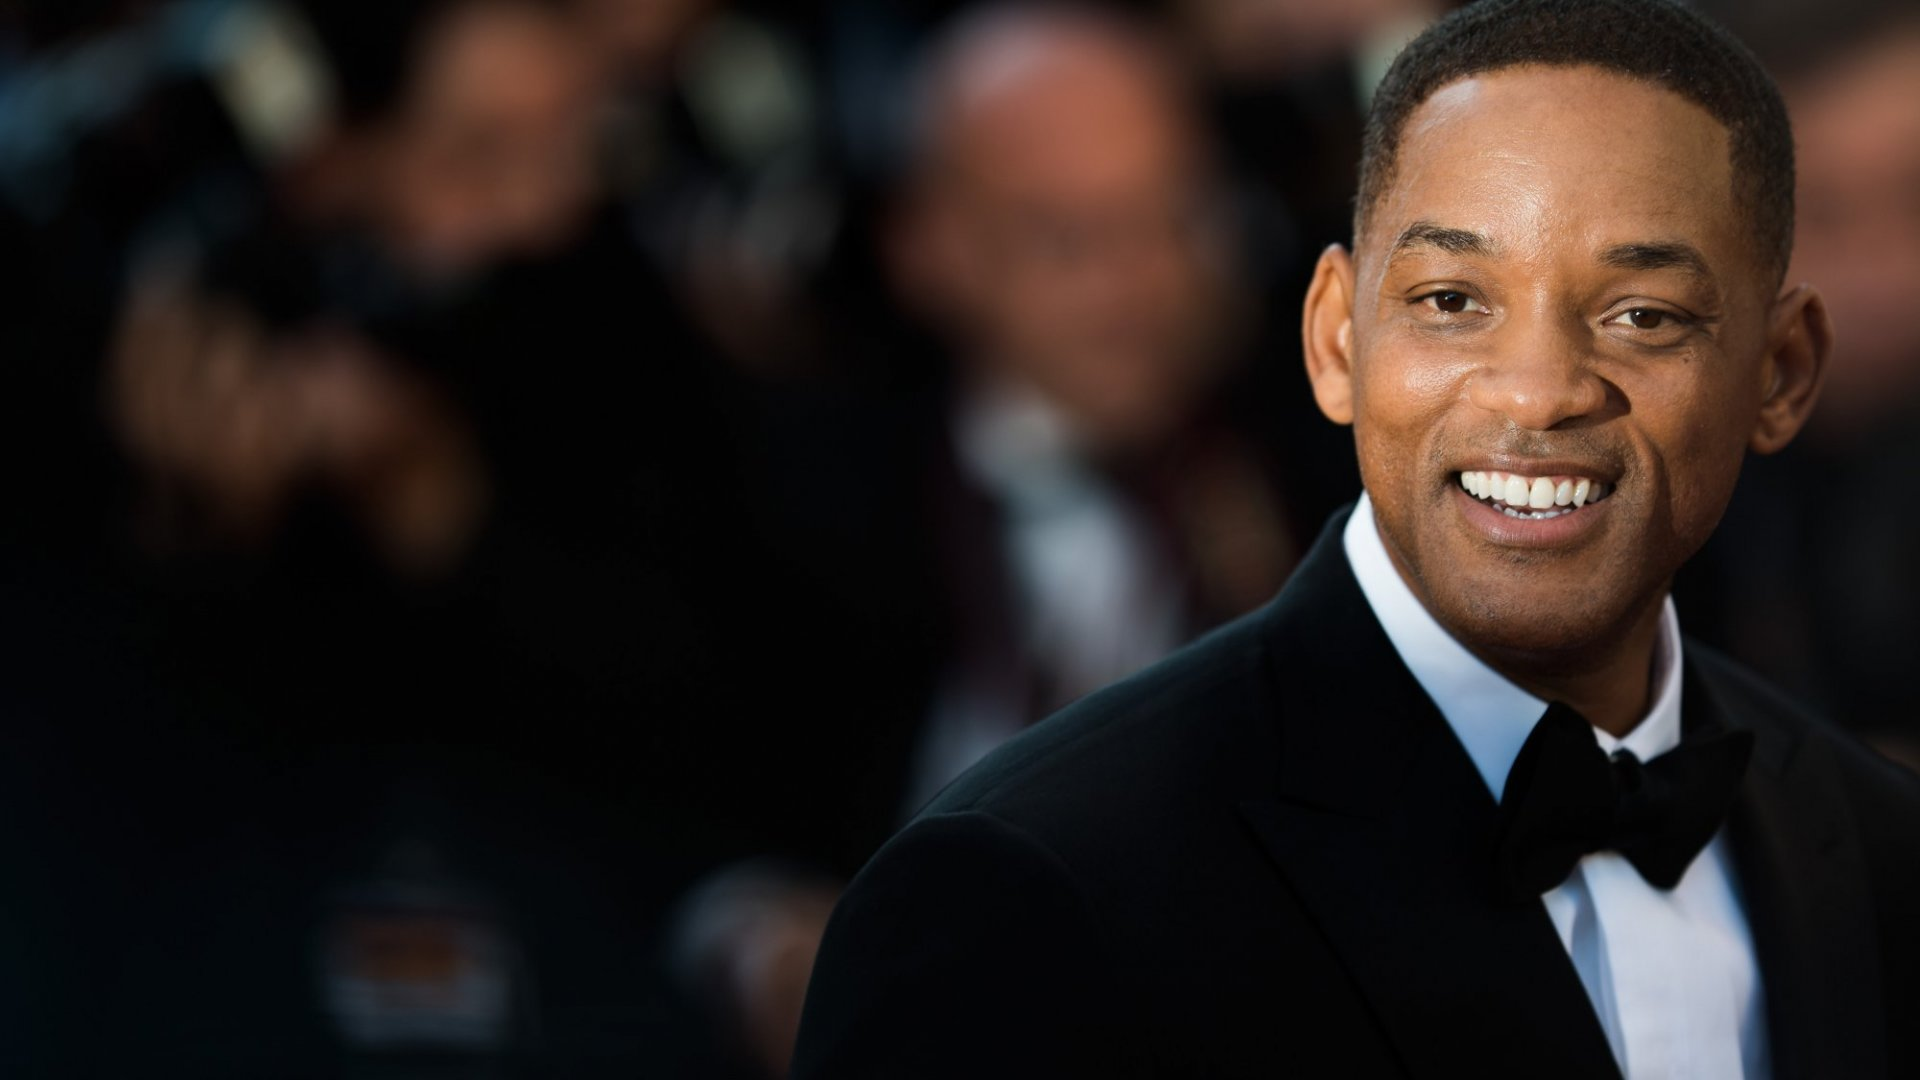 The 4-Word Phrase Will Smith Says Is the Secret to a Happy Life